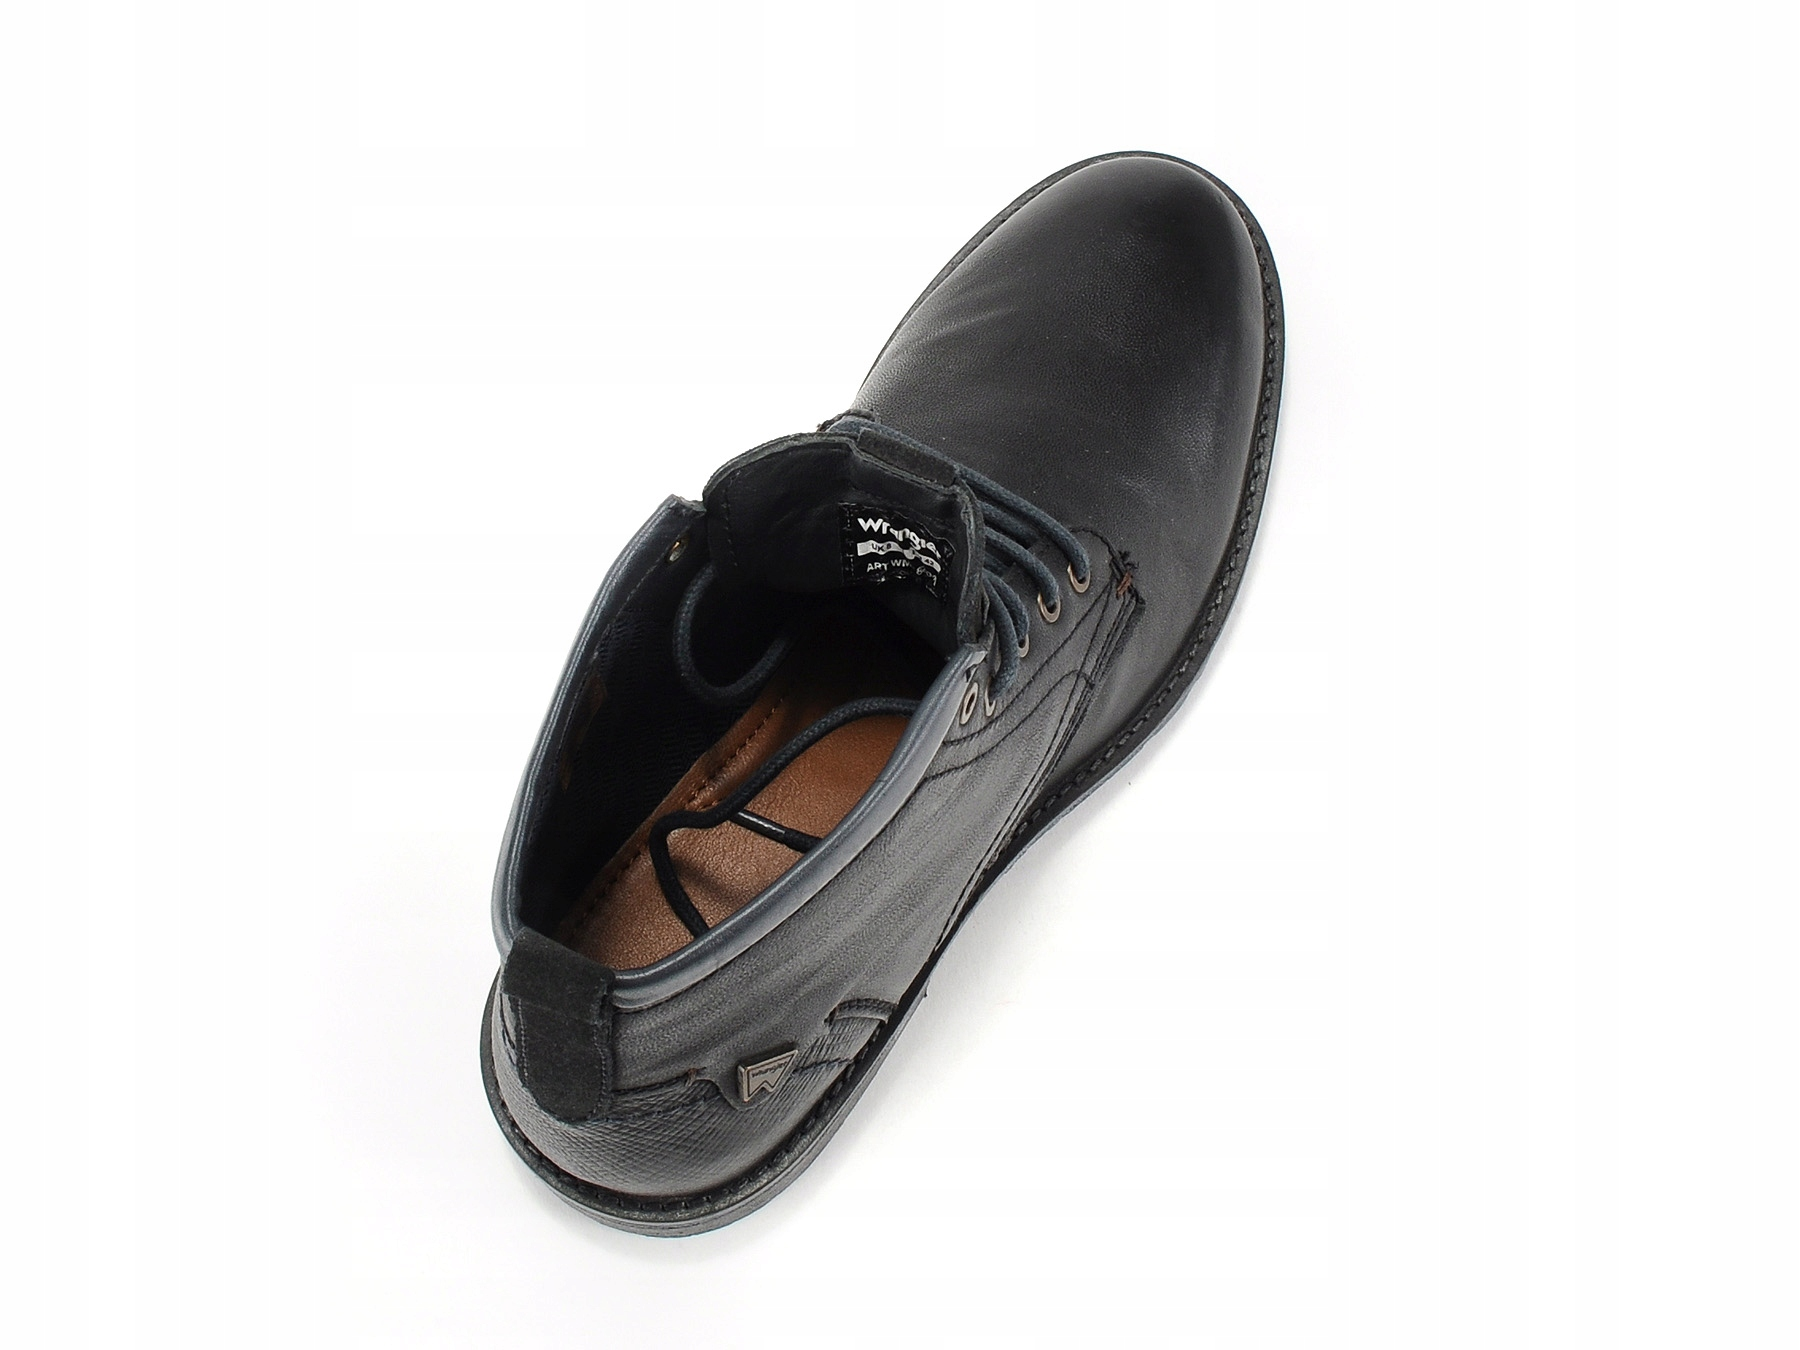 d9591900a652a Buty Wrangler Boogie Chelsea Anthracite (42) - 7735012346 ...